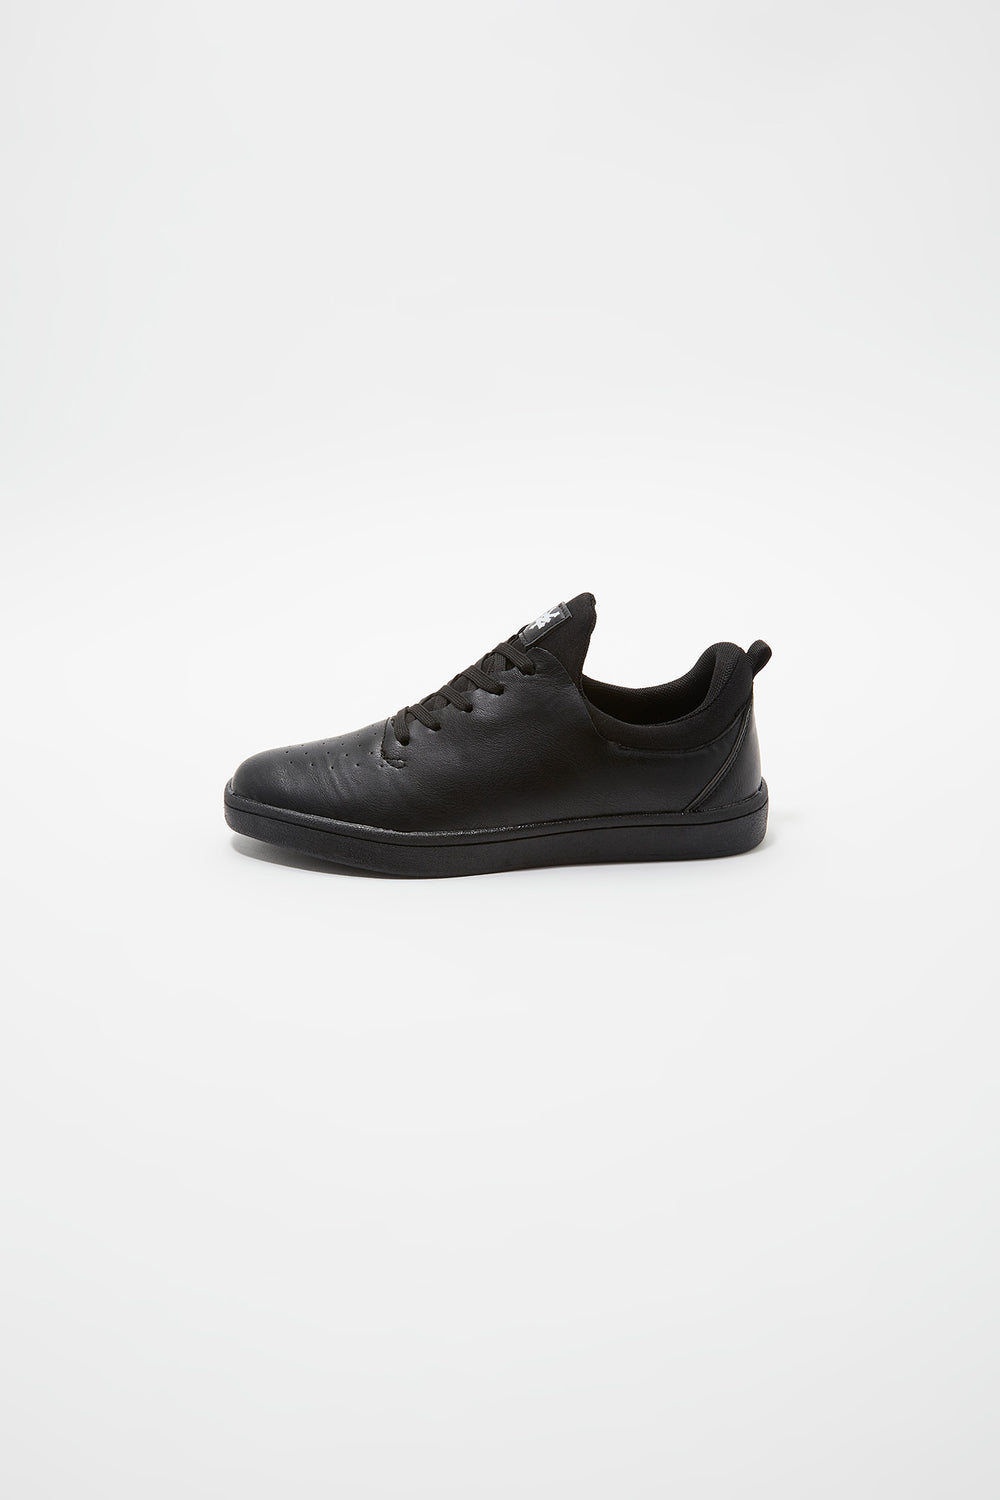 Zoo York Youth Skate Shoes Black